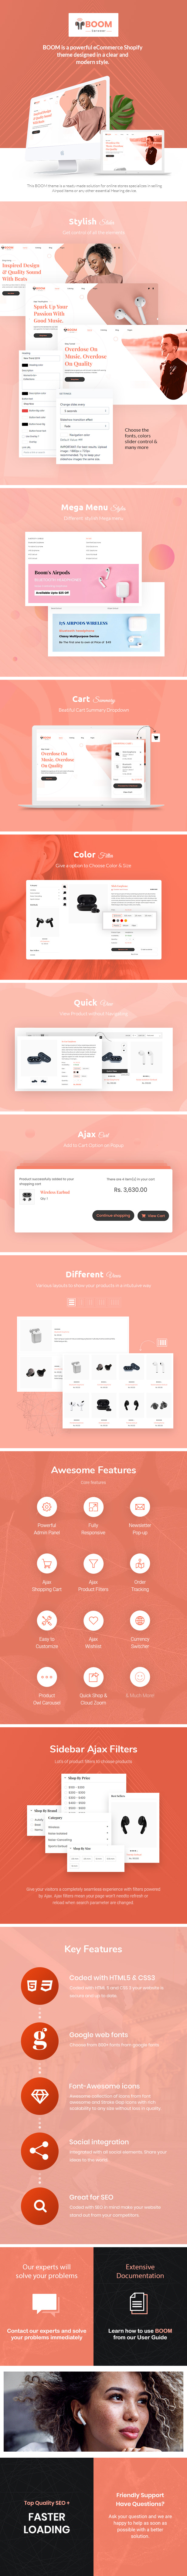 Boom - One Product Electronics Shopify Theme - 7